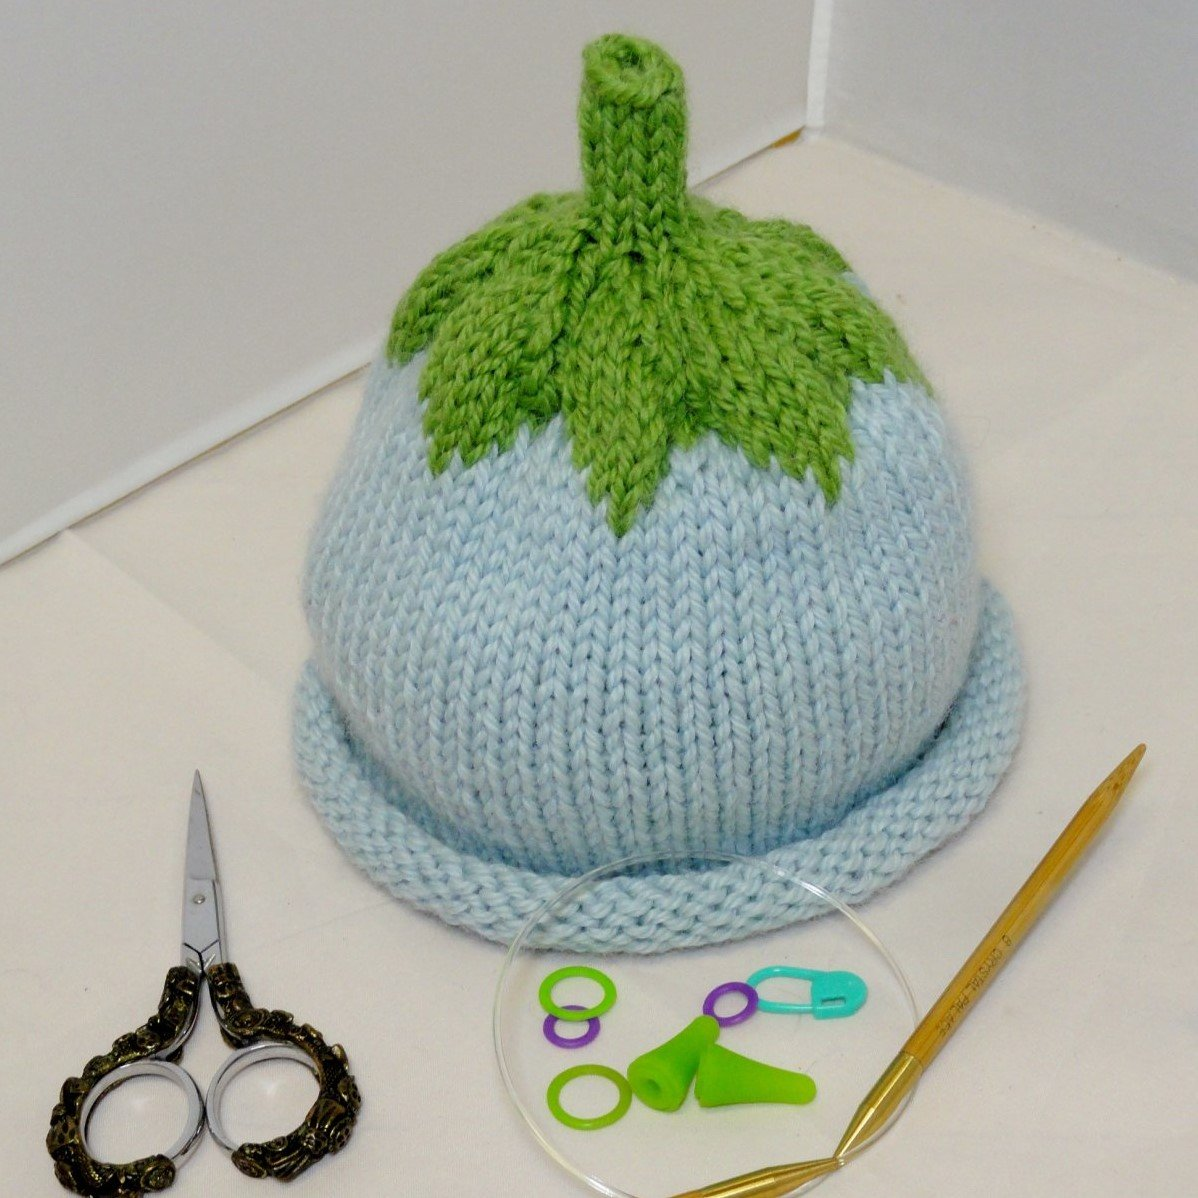 Learn to Knit a Baby Hat - On Demand Class